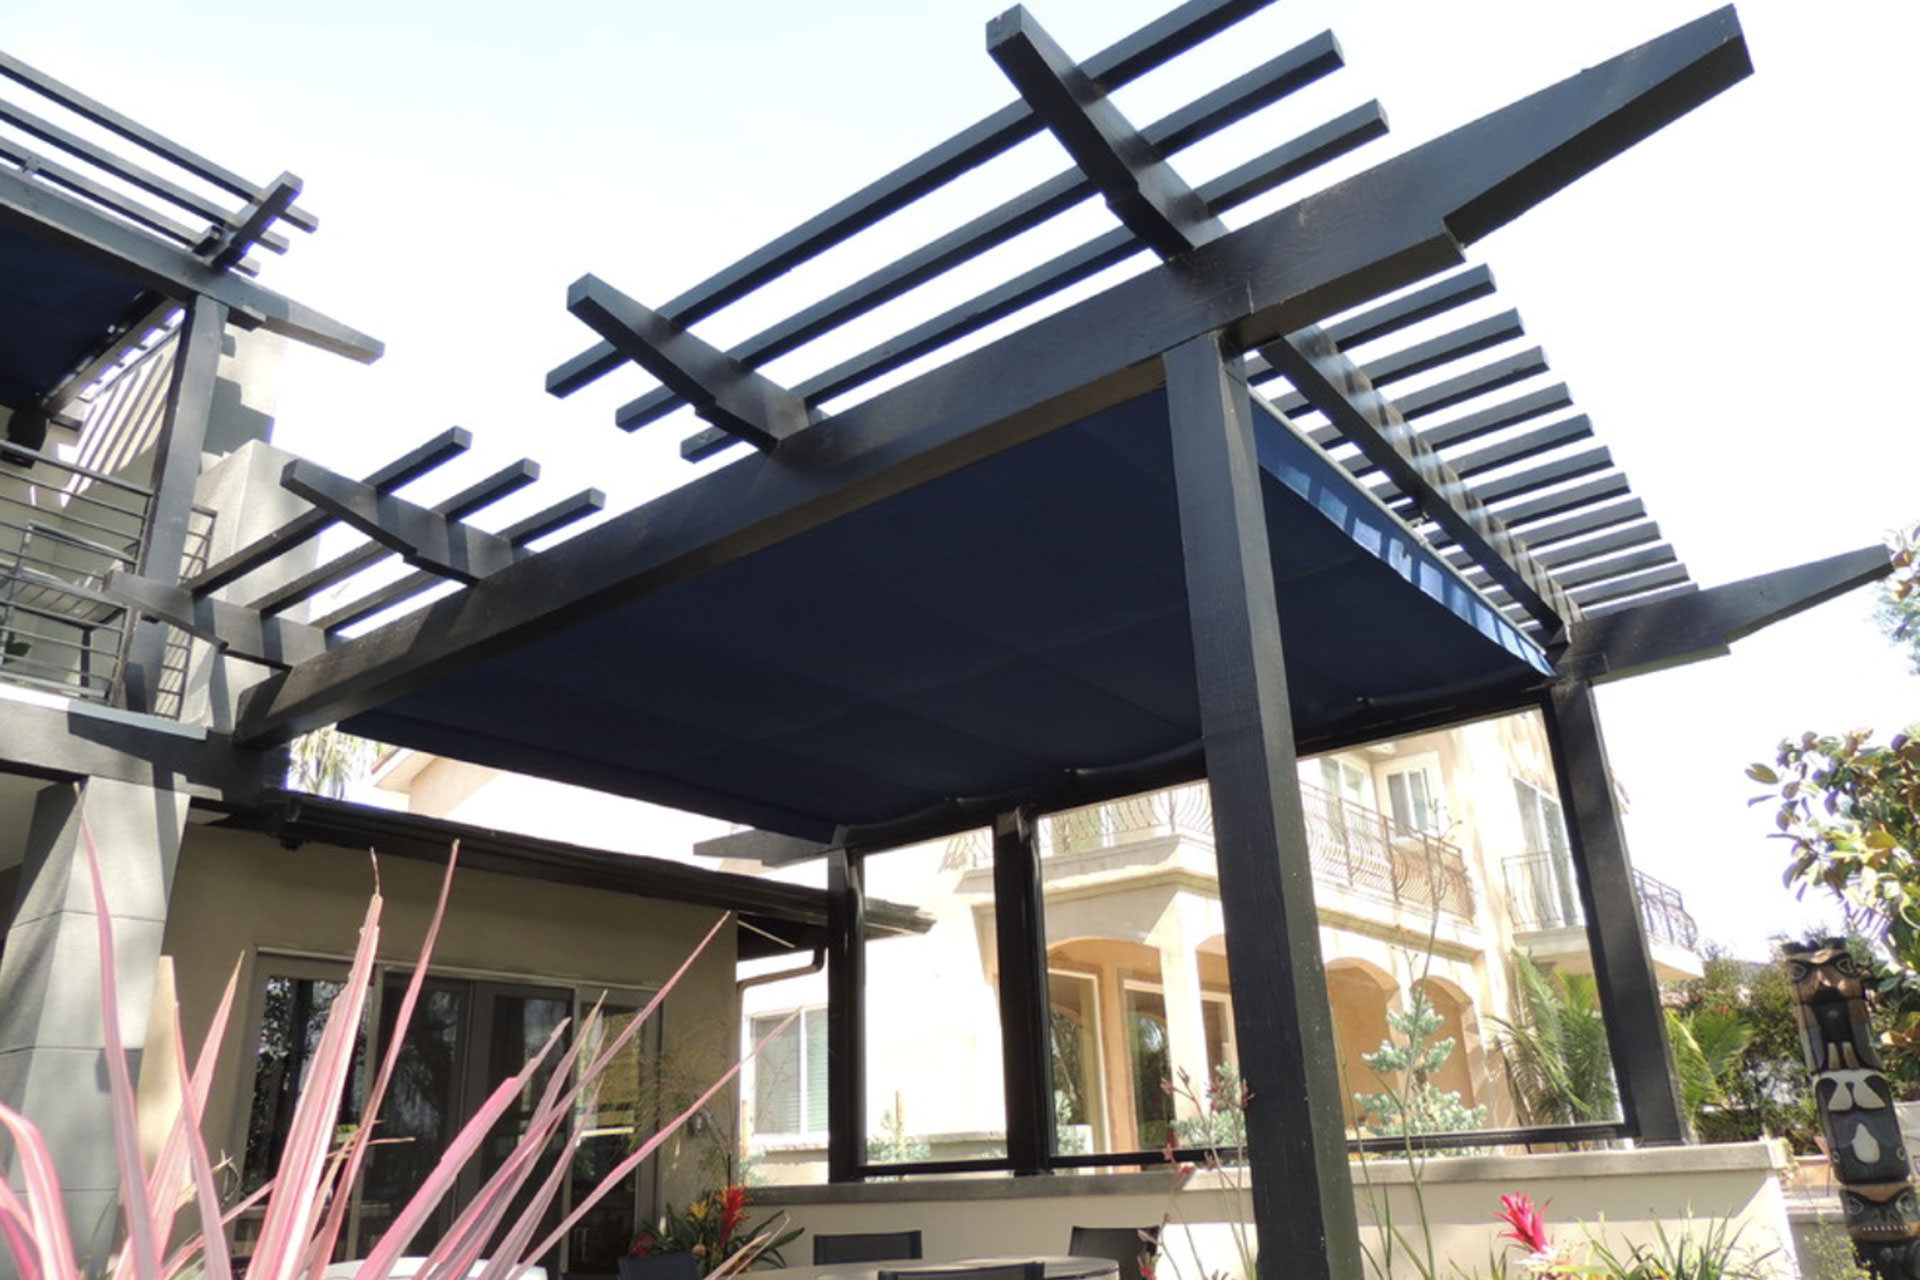 Cover Patio Pergola Pergolas Or Patio Covers How To Choose The Right Shade Solution